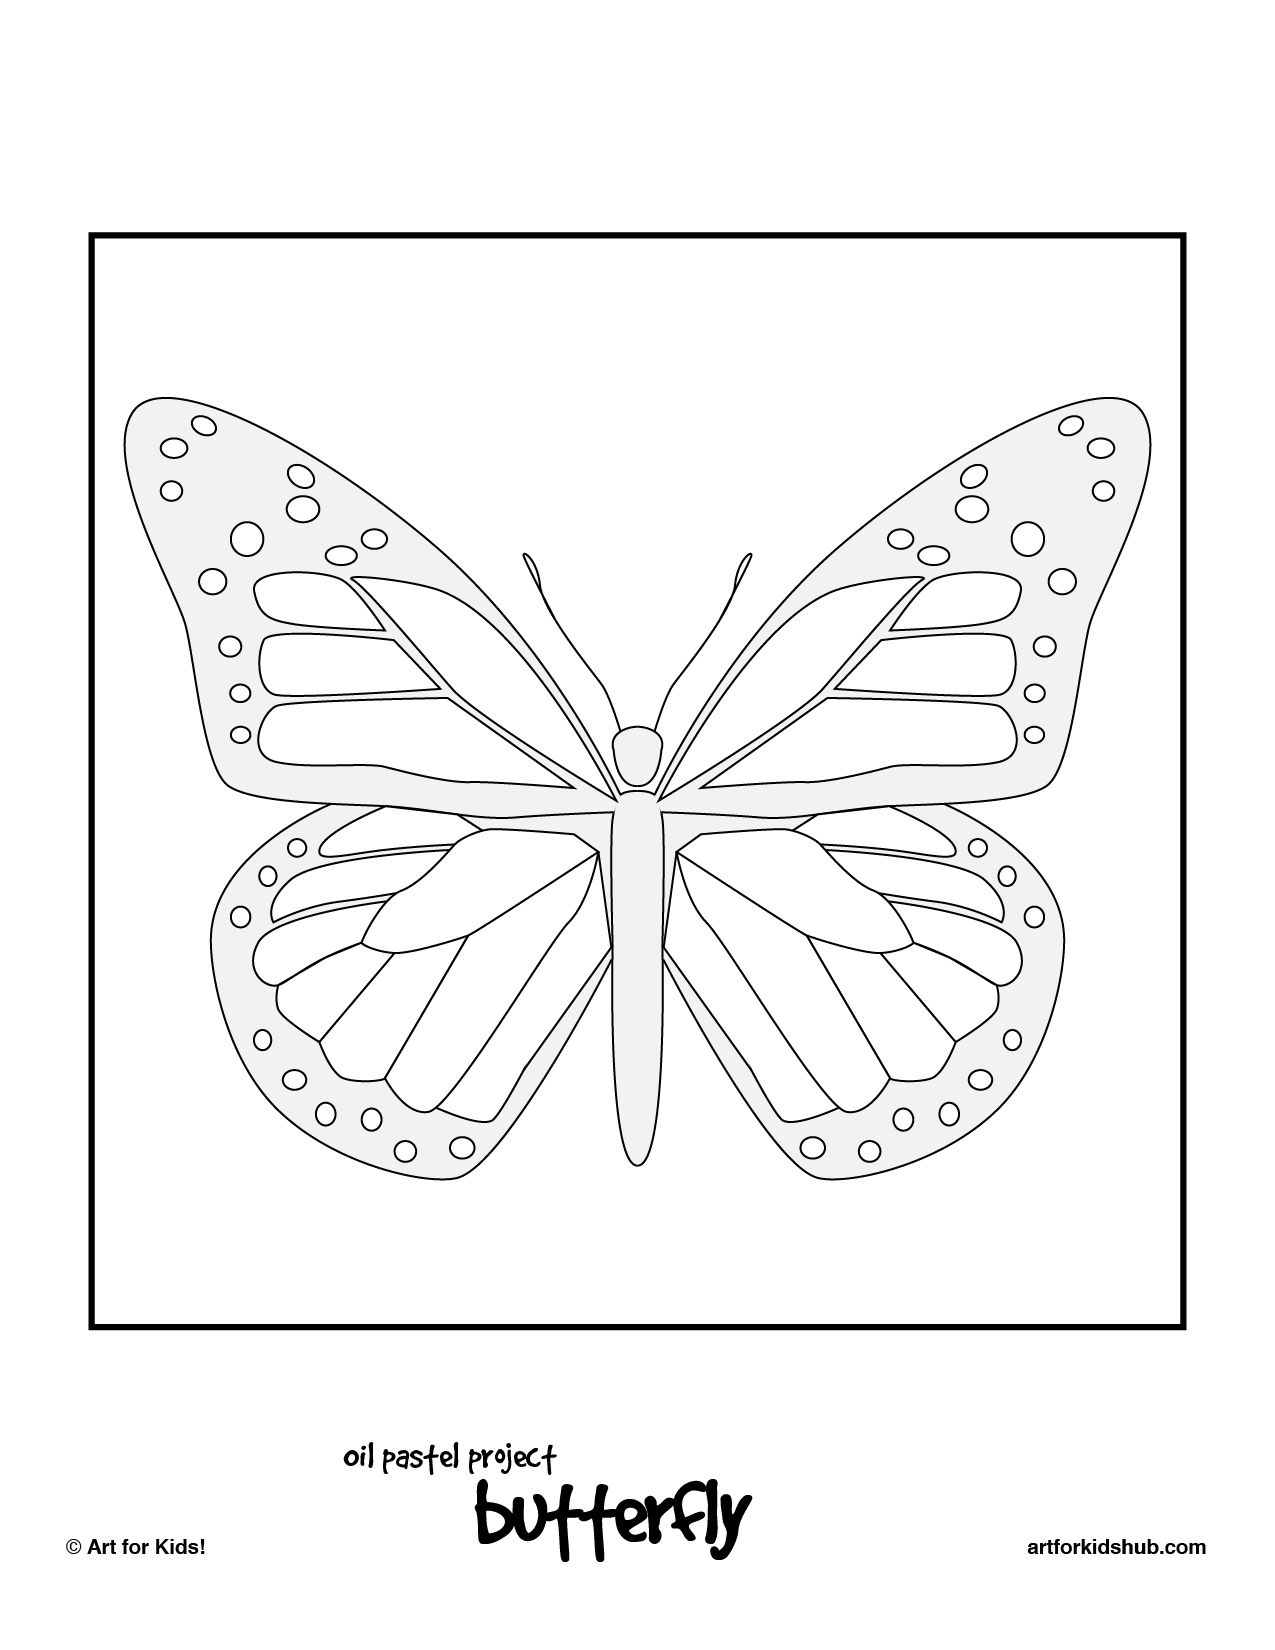 Butterfly coloring page symmetry - Oil Pastel Art Project Monarch Butterfly Art For Kids Hub